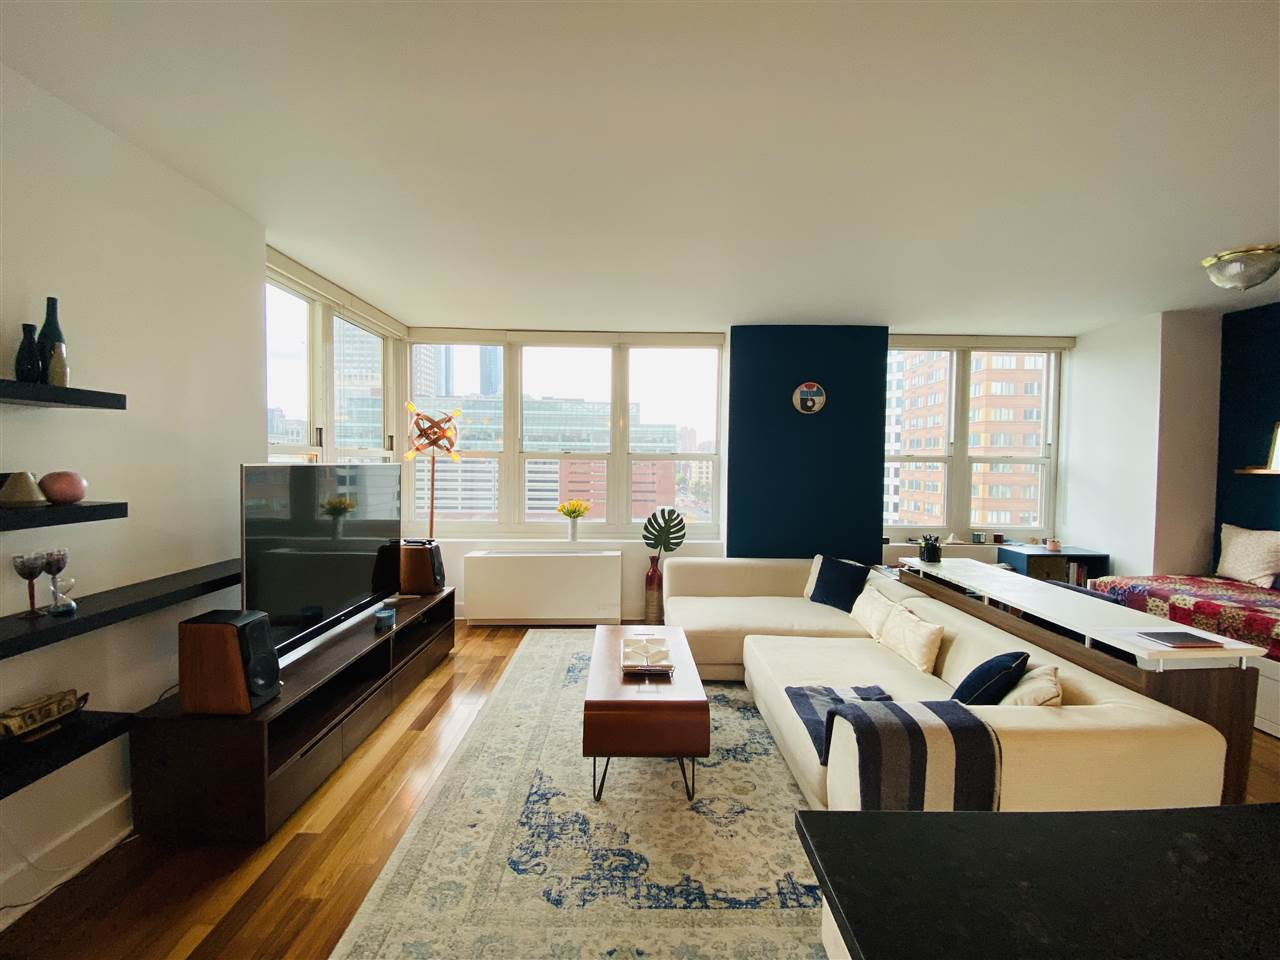 This corner unit is one-of-a-kind and rarely seen for sale.Conveniently located this gorgeous 837 SqFt 1 bedroom with appx. 670 SqFt Terrace offers gleaming hardwood floors, open kitchen design complete w/ cherry kitchen cabinets, granite counters, large breakfast bar, SS appliances, in-unit W/D, custom blinds, and lots of closets in bedroom w/the most amount of windows. The 08 line is the most sought after floor plan. Enjoy this huge terrace:get-together, a quiet afternoon overlooking the break through view and make your incredible own gardens. This Luxury lifestyle at the full service Trump Plaza Residences is known to the best amenities in Jersey City- 24 hour concierge, heated rooftop swimming pool, 8,000sq.ft fitness center, Spa, Virtual golf, Billiards room, Business conference center, and more; All walking distance to NYC transportation including the NY Waterway Ferry, PATH train stations, Light rail and buses. A commuter's delight! A must see!